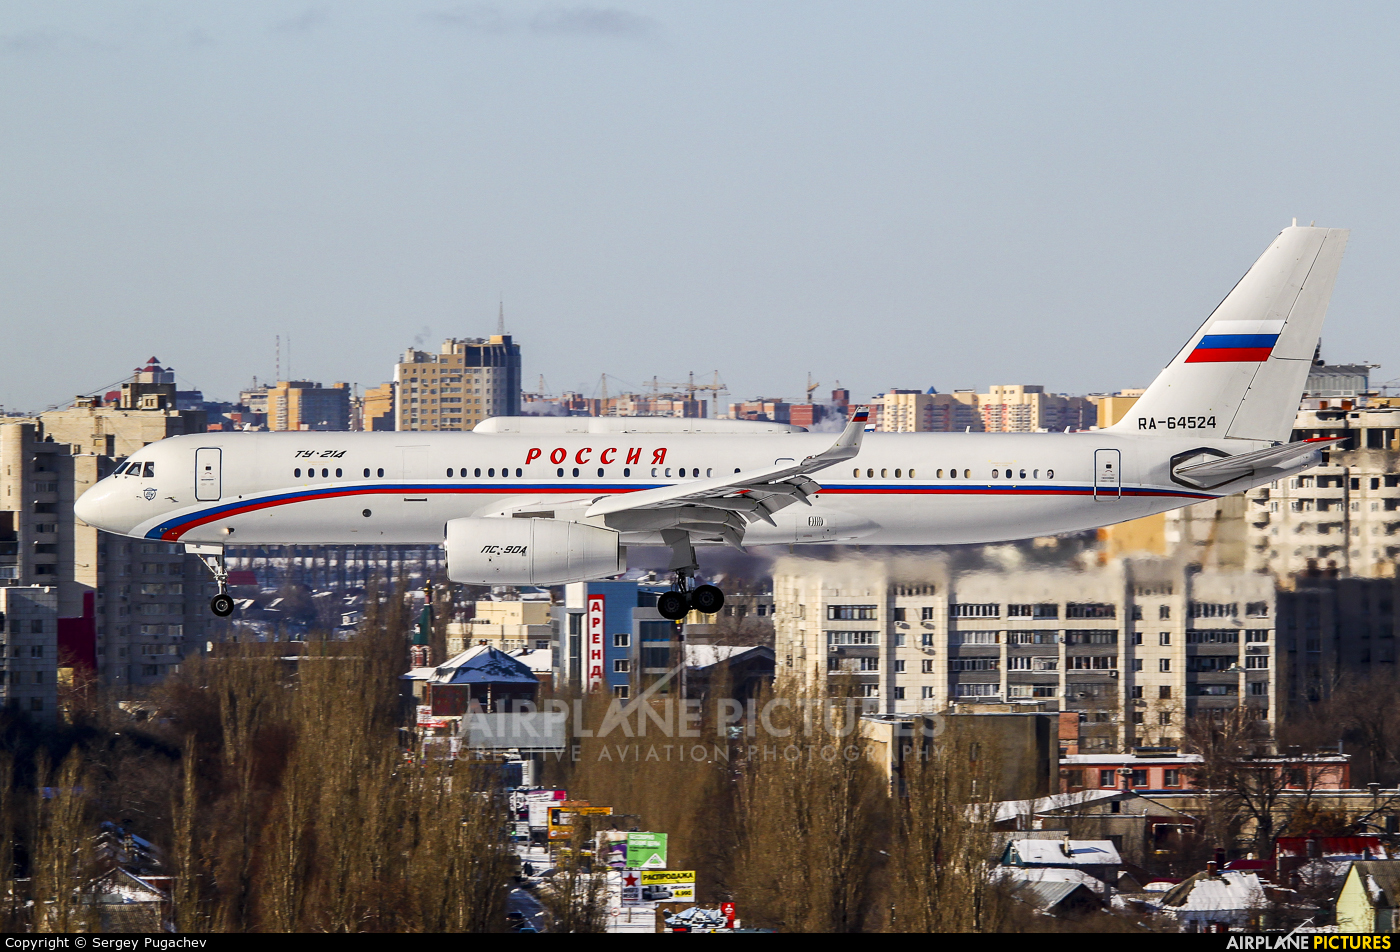 Russia - Government RA-64524 aircraft at Undisclosed Location